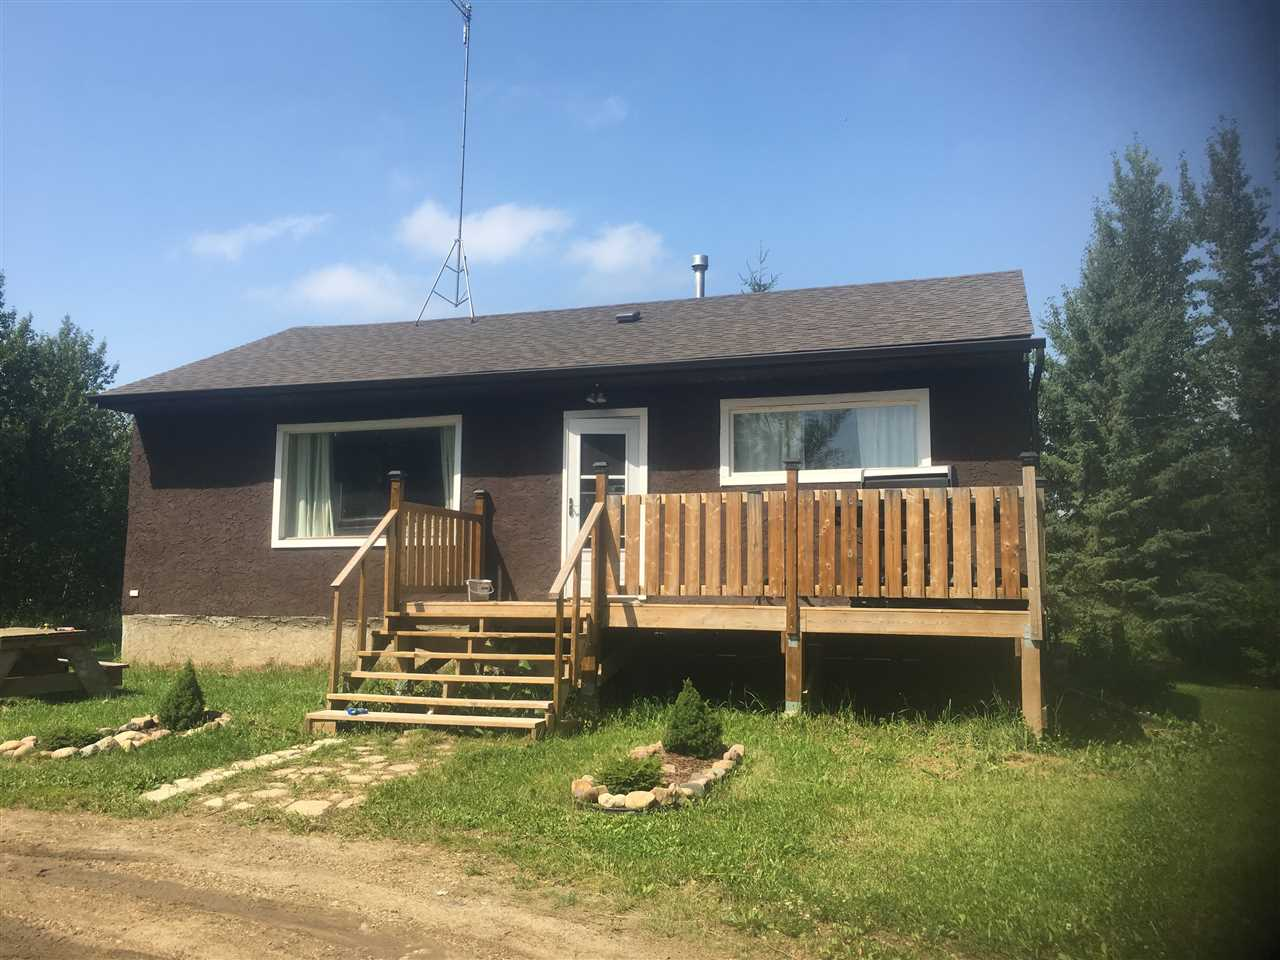 Looking for your own piece of paradise with a good sized house with a full height basement at a super affordable price? Fabulous location minutes to Alberta beach fishing, swimming and boating! This amazing 3.5 acres of mature trees and rolling hills has walking and quad trails throughout, perfect for kids, dogs and horses. Solid family bungalow with new many new vinyl windows and two good sized bedrooms with full basement, deck and shop. Hardwood floors, large kitchen with lots of cabinet space. Brand New Singles, Upgraded electrical to 100 amp service, drilled deep well. Would make a great recreational property for the weekend as well. Open yard surrounded by large trees and fruit bearing trees and shrubs. Next to an Environmental Reserve and neighbouring yard is fenced. Landscaped front yard. Excellent opportunity for hobby farm. Only 5 minutes away from Alberta Beach, 20 minutes from Stony Plain. Features large powered workshop!